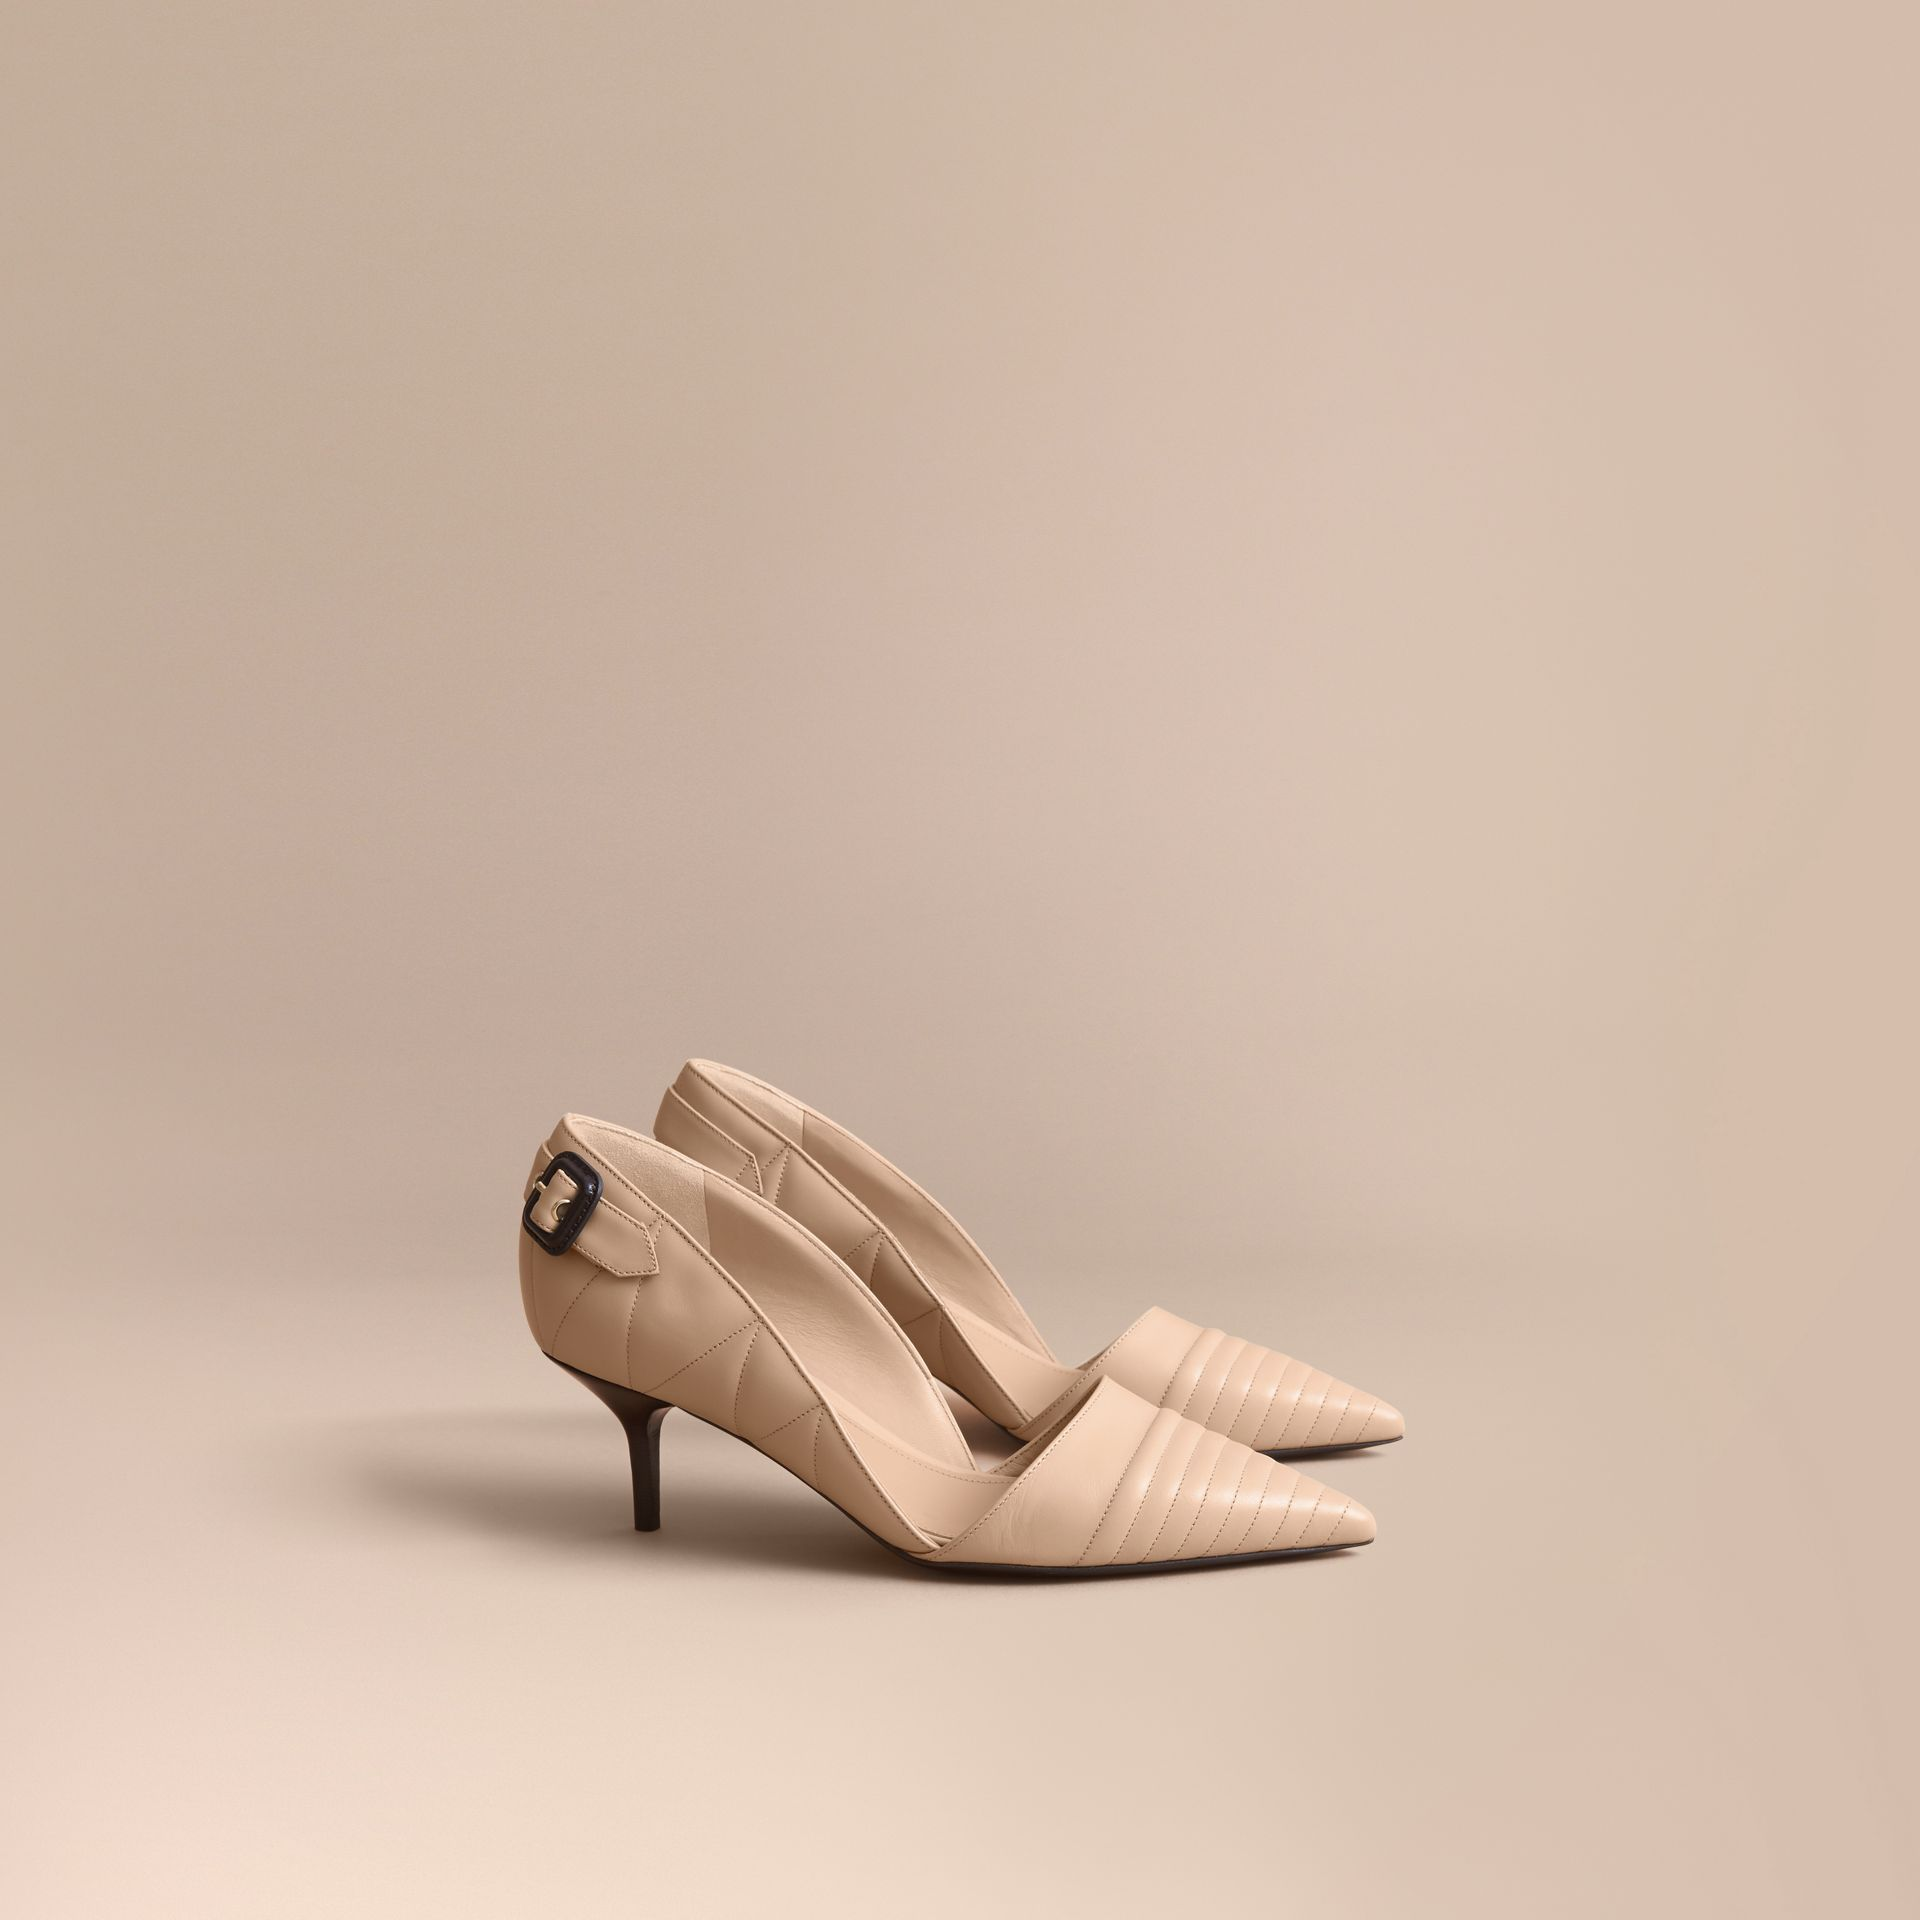 Quilted Leather D'Orsay Pumps in Pale Taupe - Women | Burberry Singapore - gallery image 1